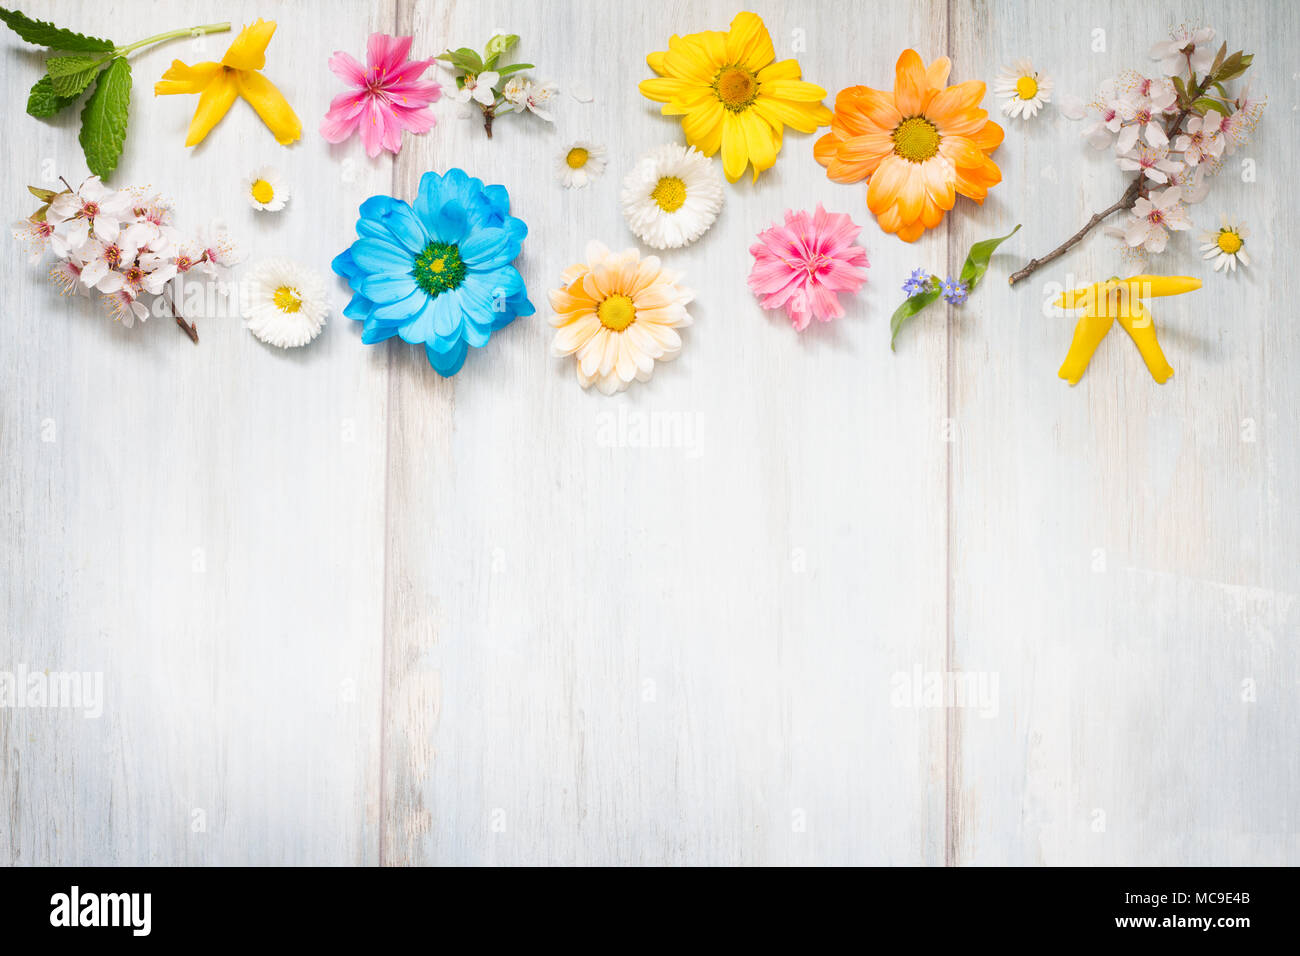 Spring Summer Flowers On Wooden Retro Planks Abstract Floral